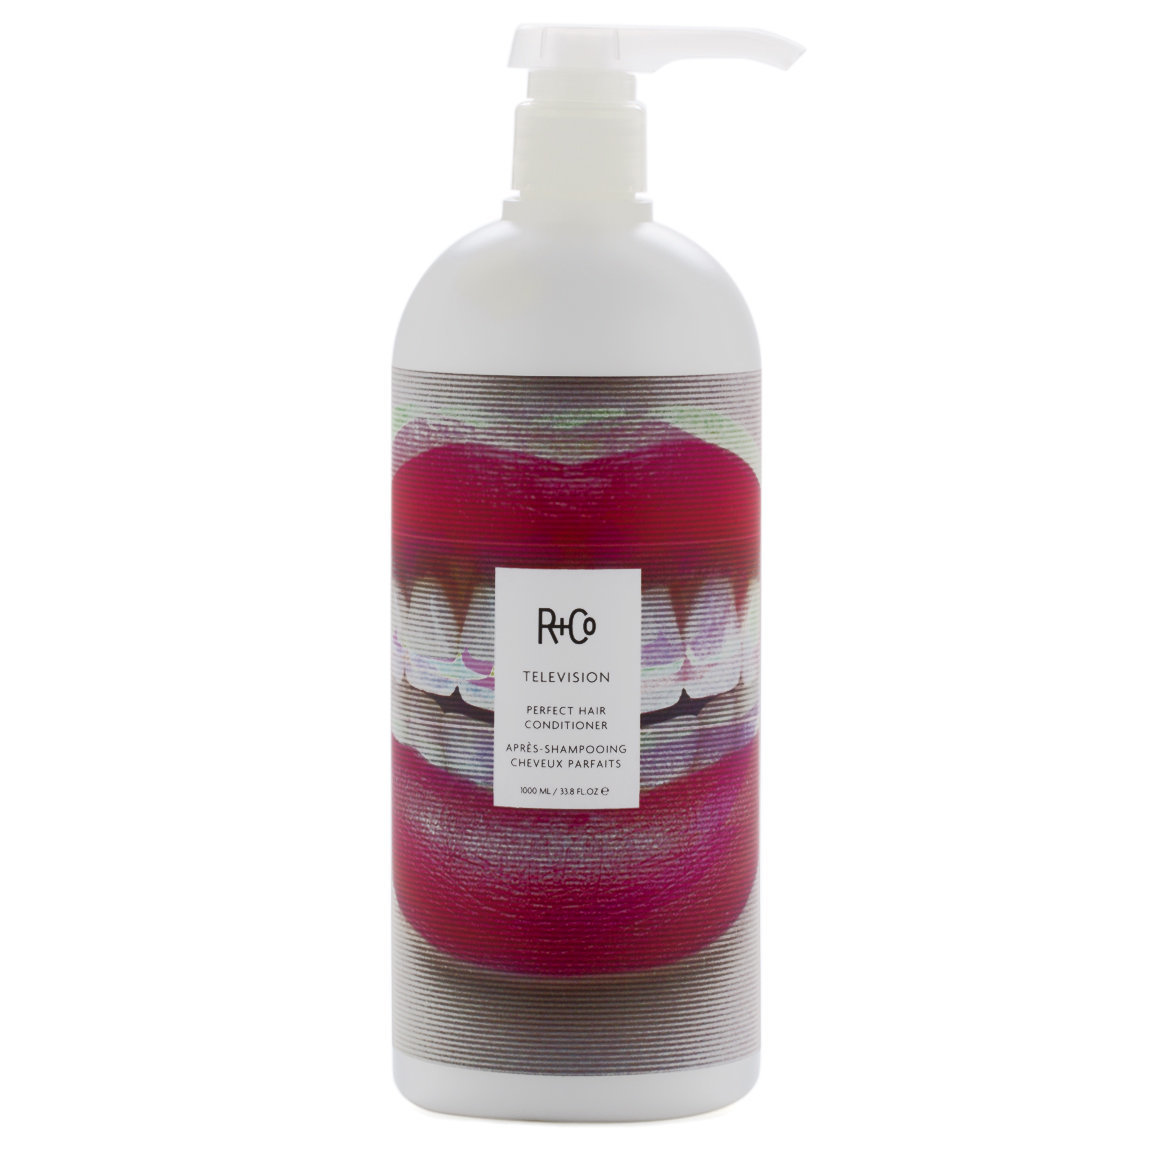 R+Co Television Perfect Hair Conditioner 1 L alternative view 1 - product swatch.